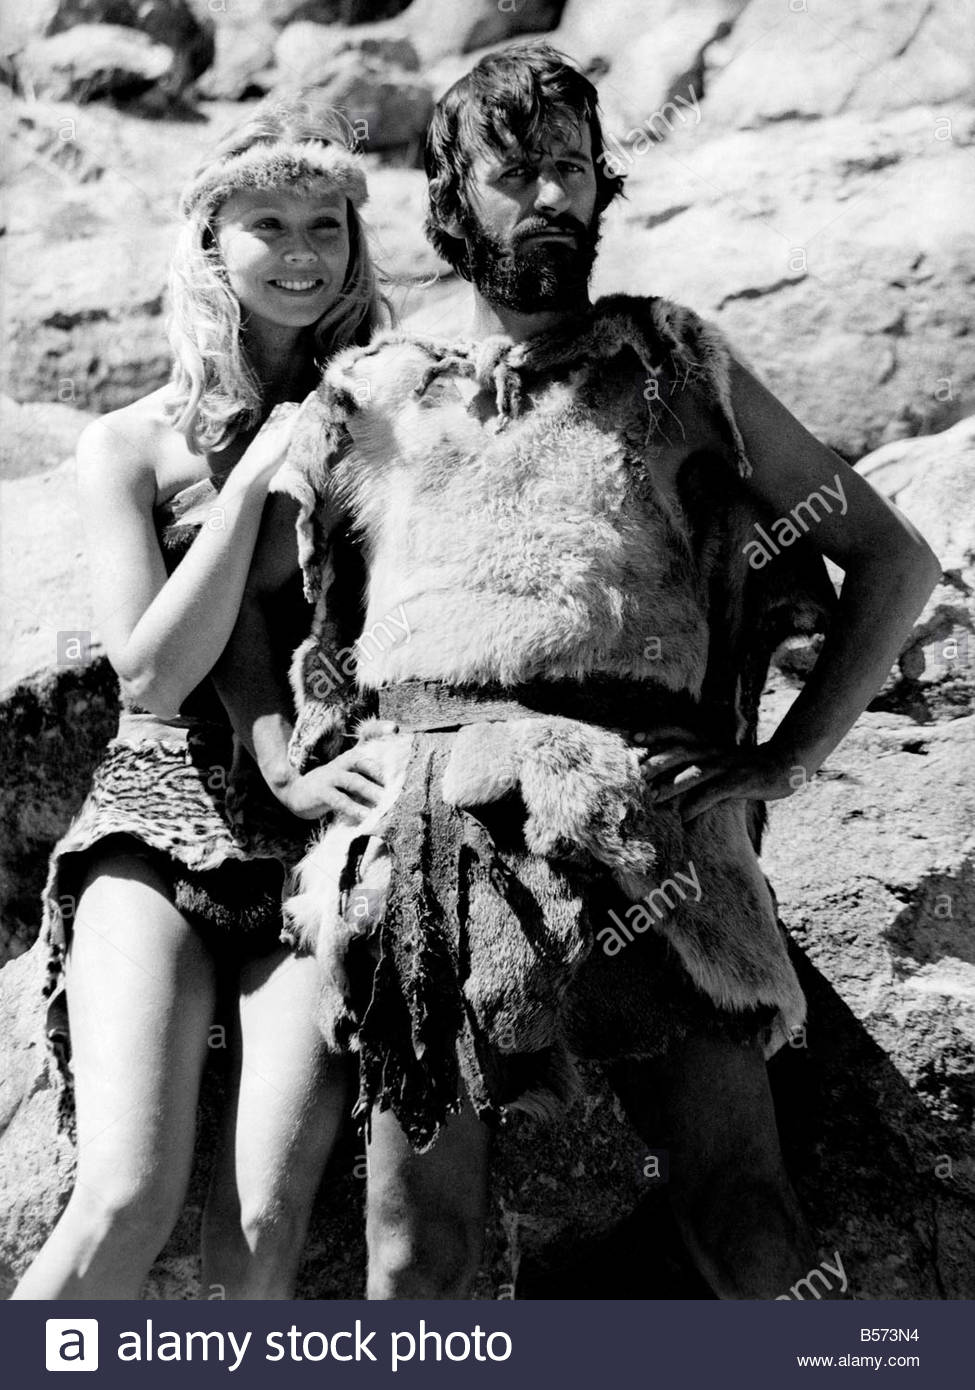 Ringo Starr In His New Film CavemenRingo With Shelly Long March 1980 P003739